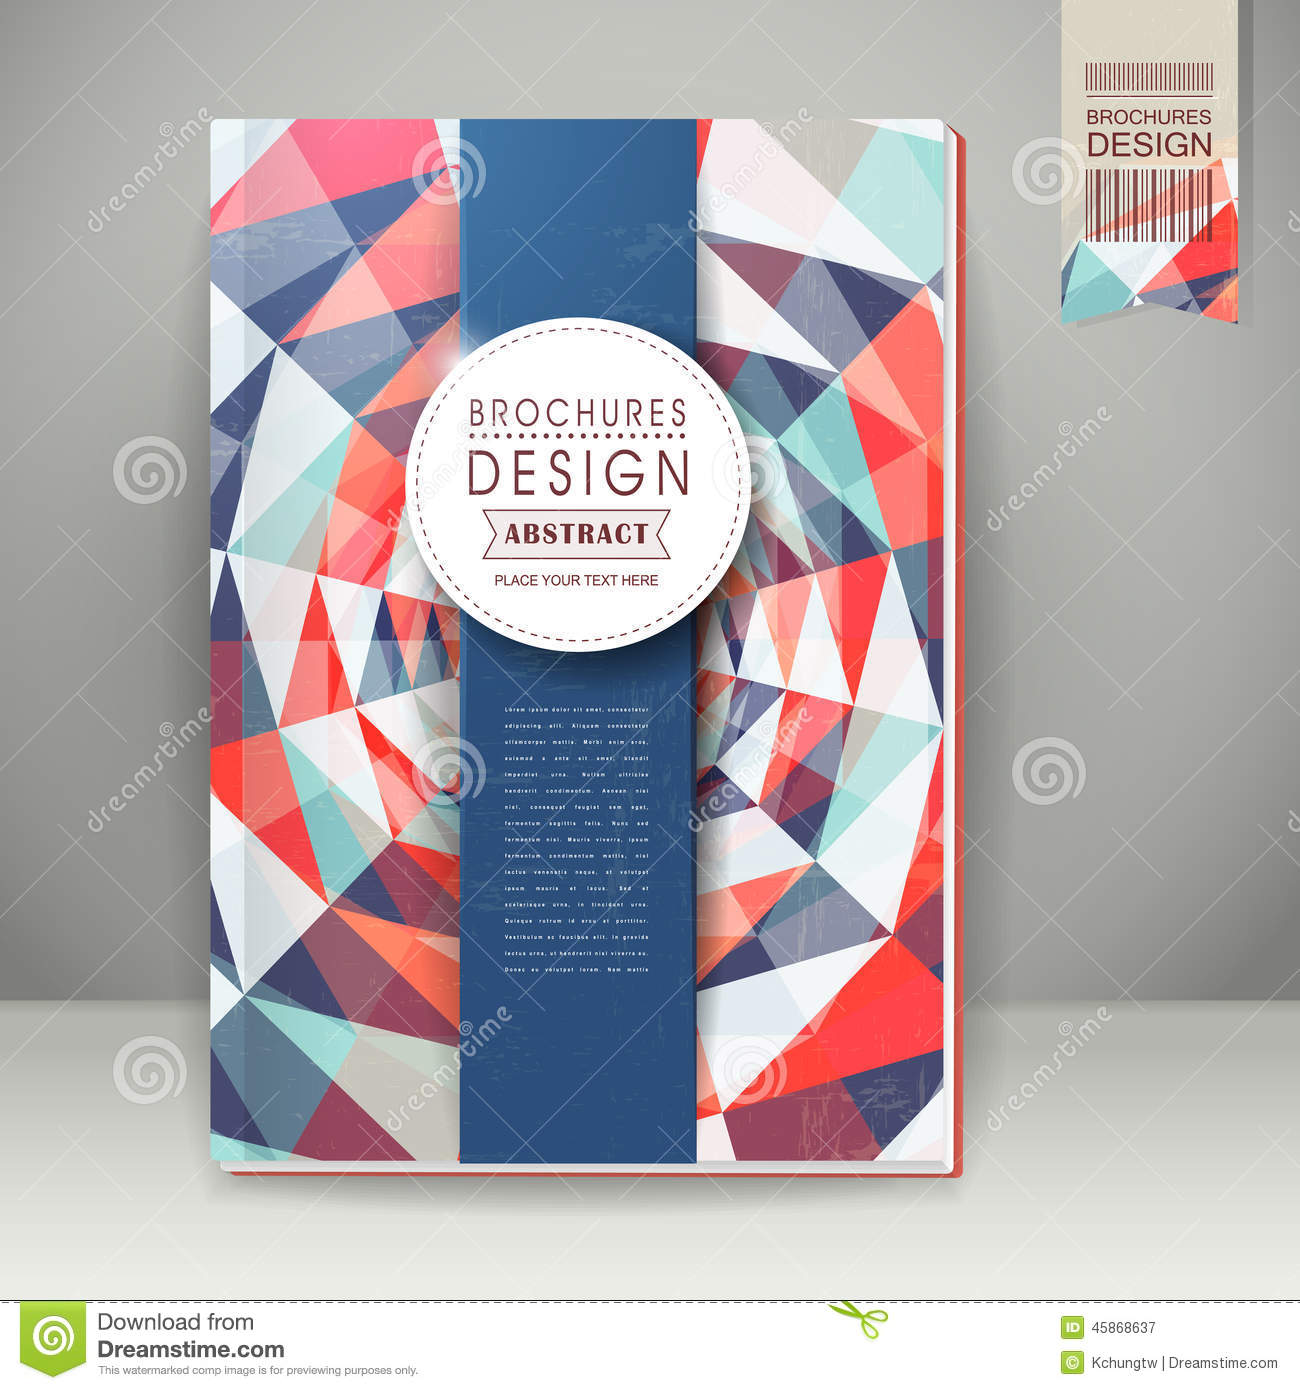 Colorful Geometric Background Design For Book Cover Stock Vector ...